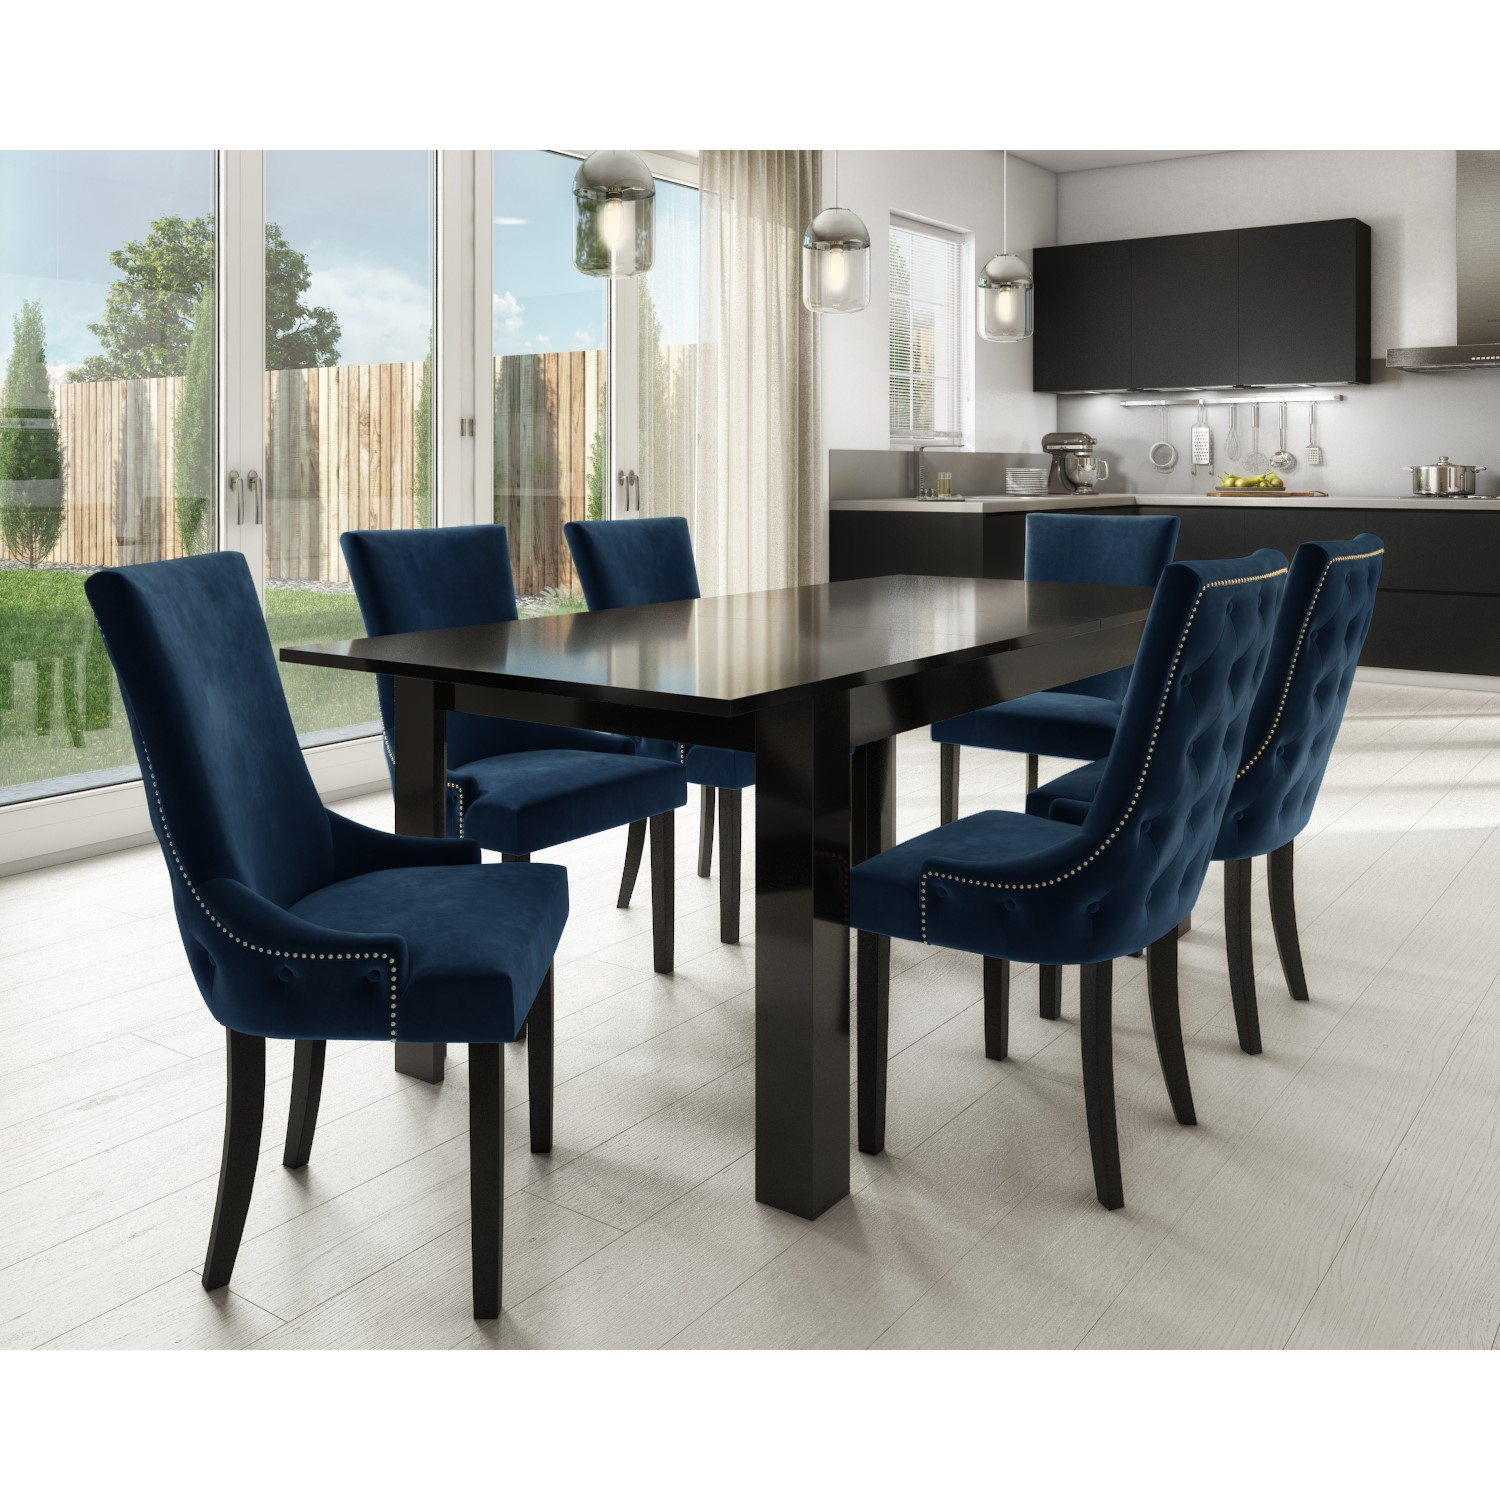 Black High Gloss Extending Dining Table with 6 Navy Blue Vel